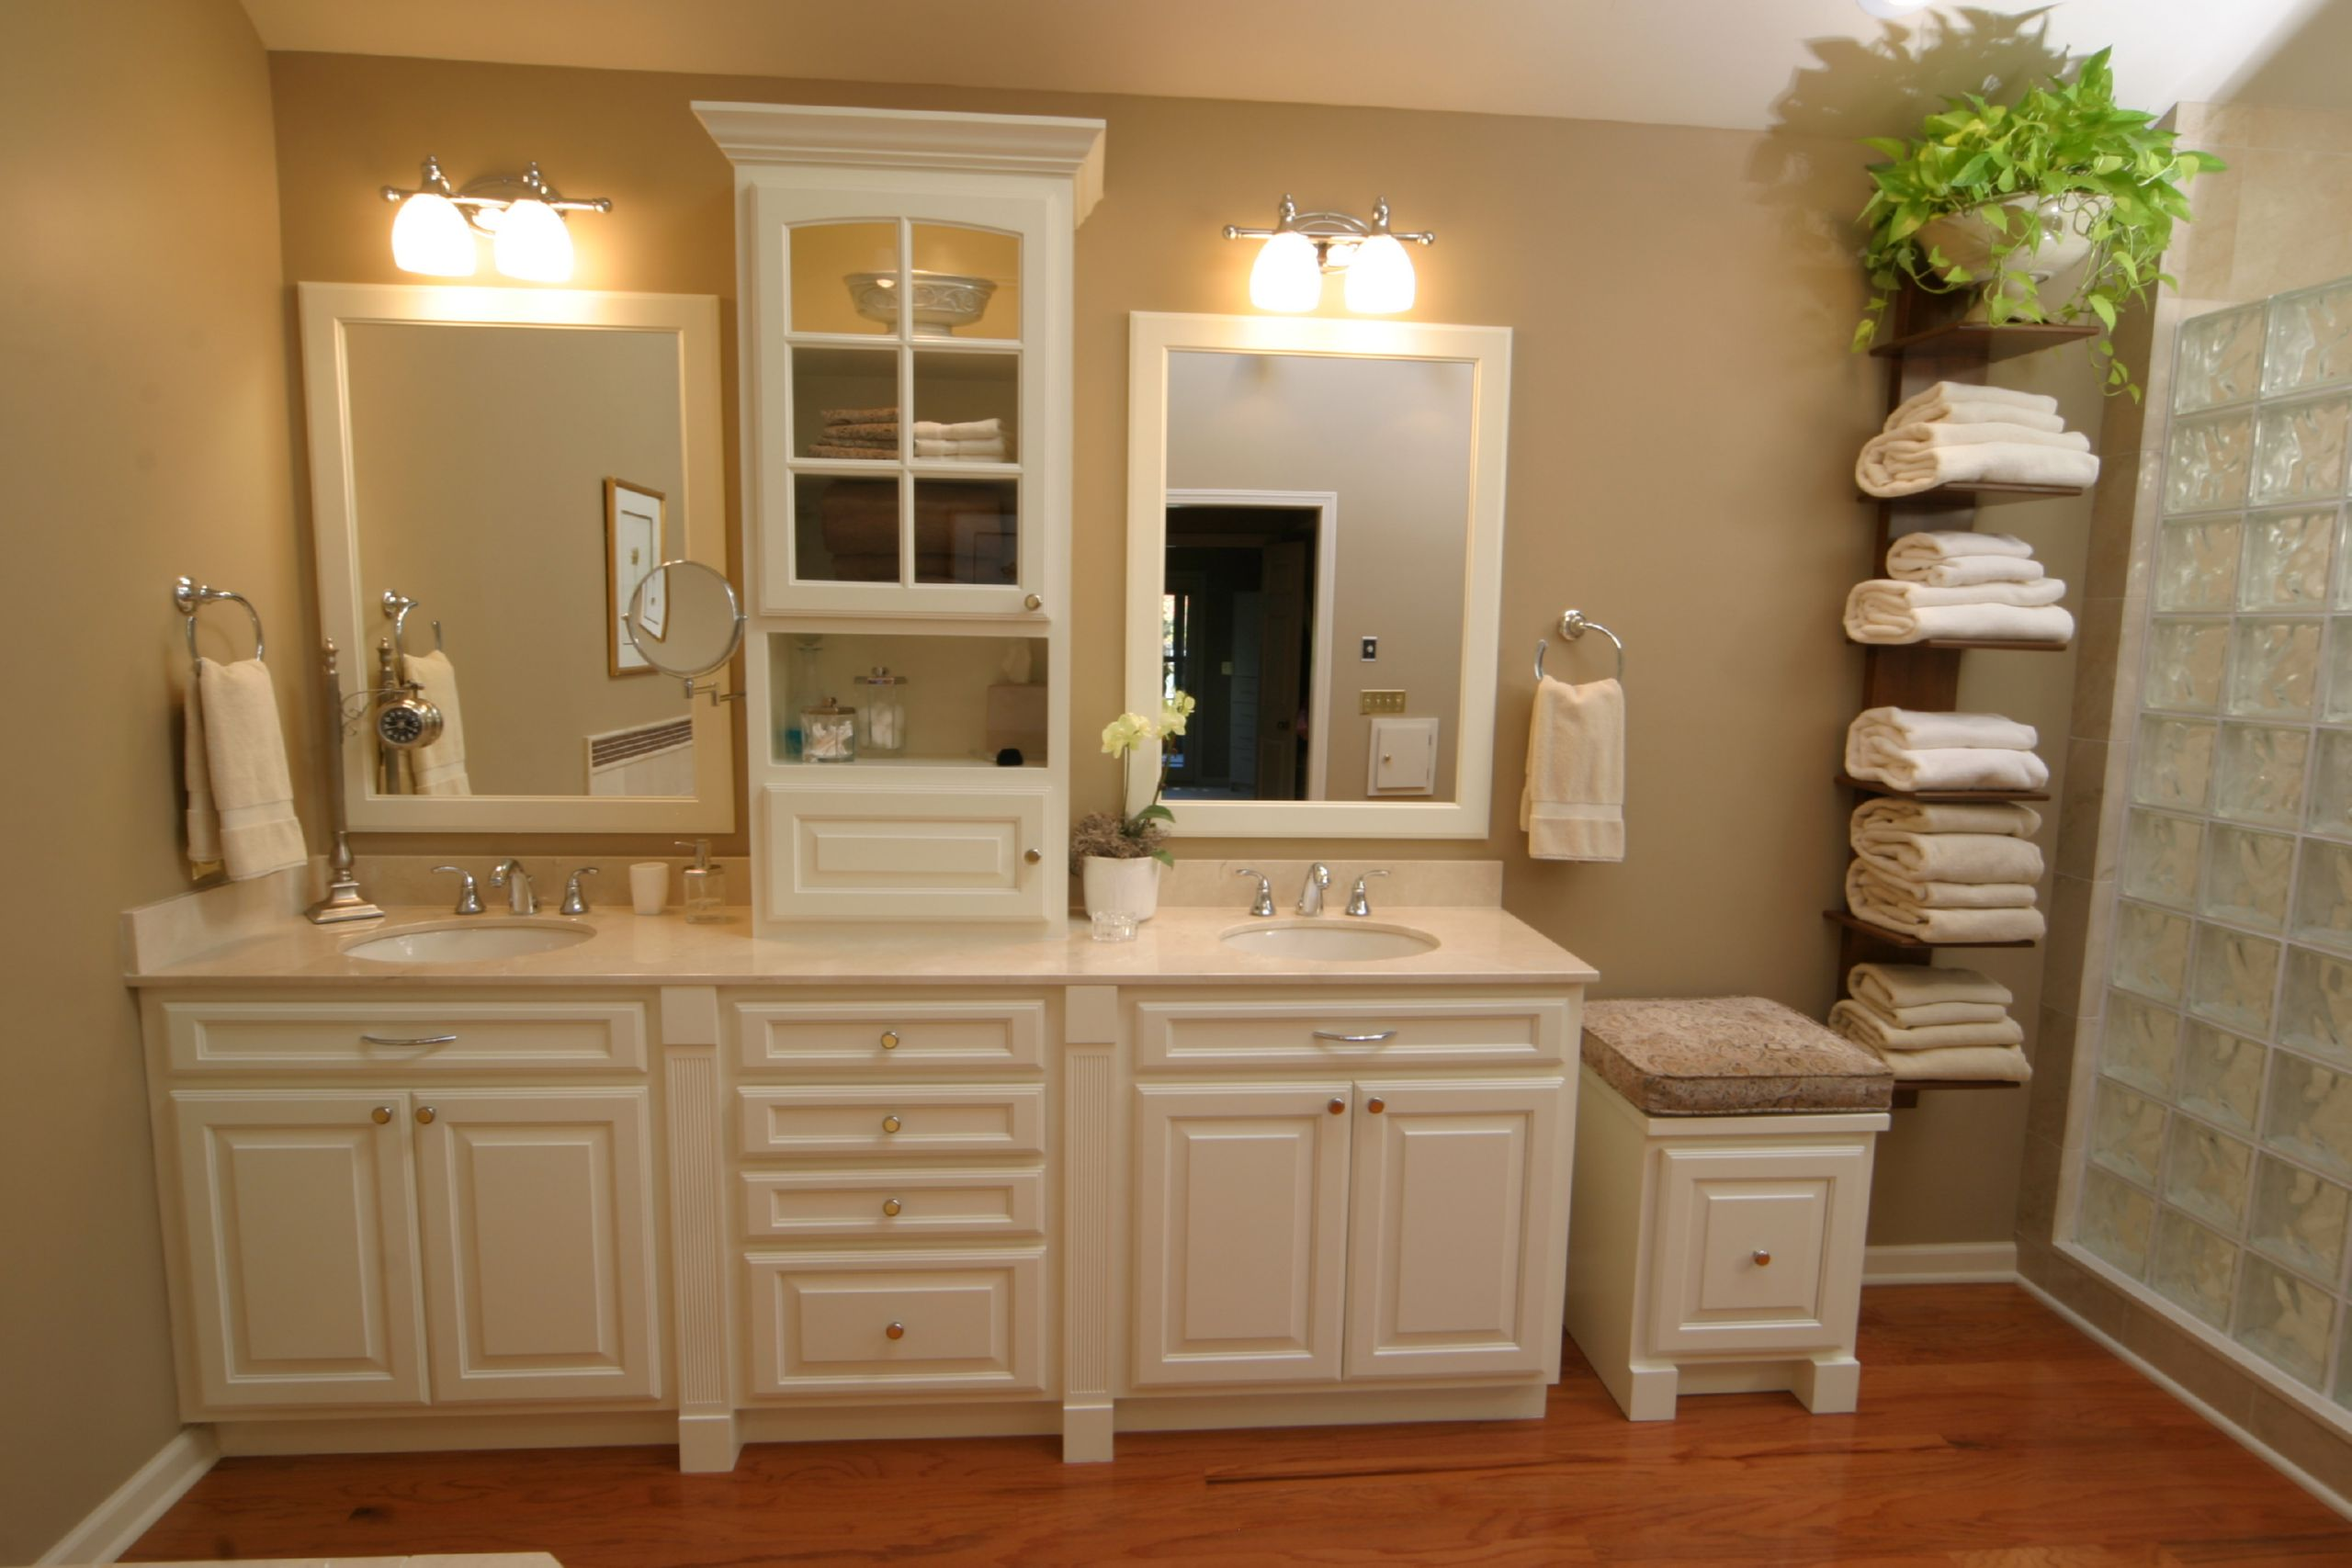 Bathroom remodeling bath remodel contractor for Redesign bathroom ideas